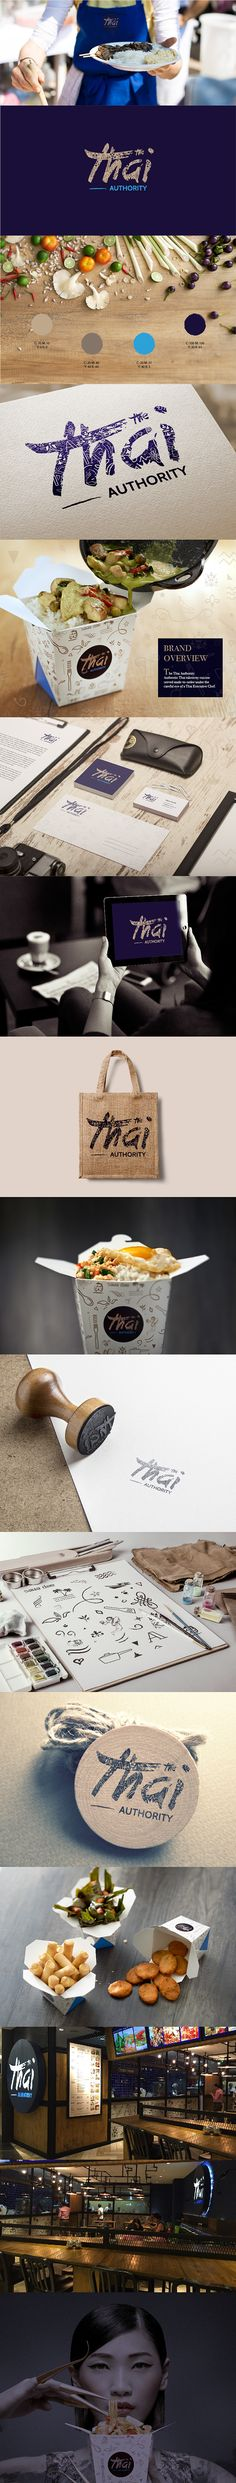 The Thai Authority. You're authorized. (More design inspiration at www.aldenchong.com)